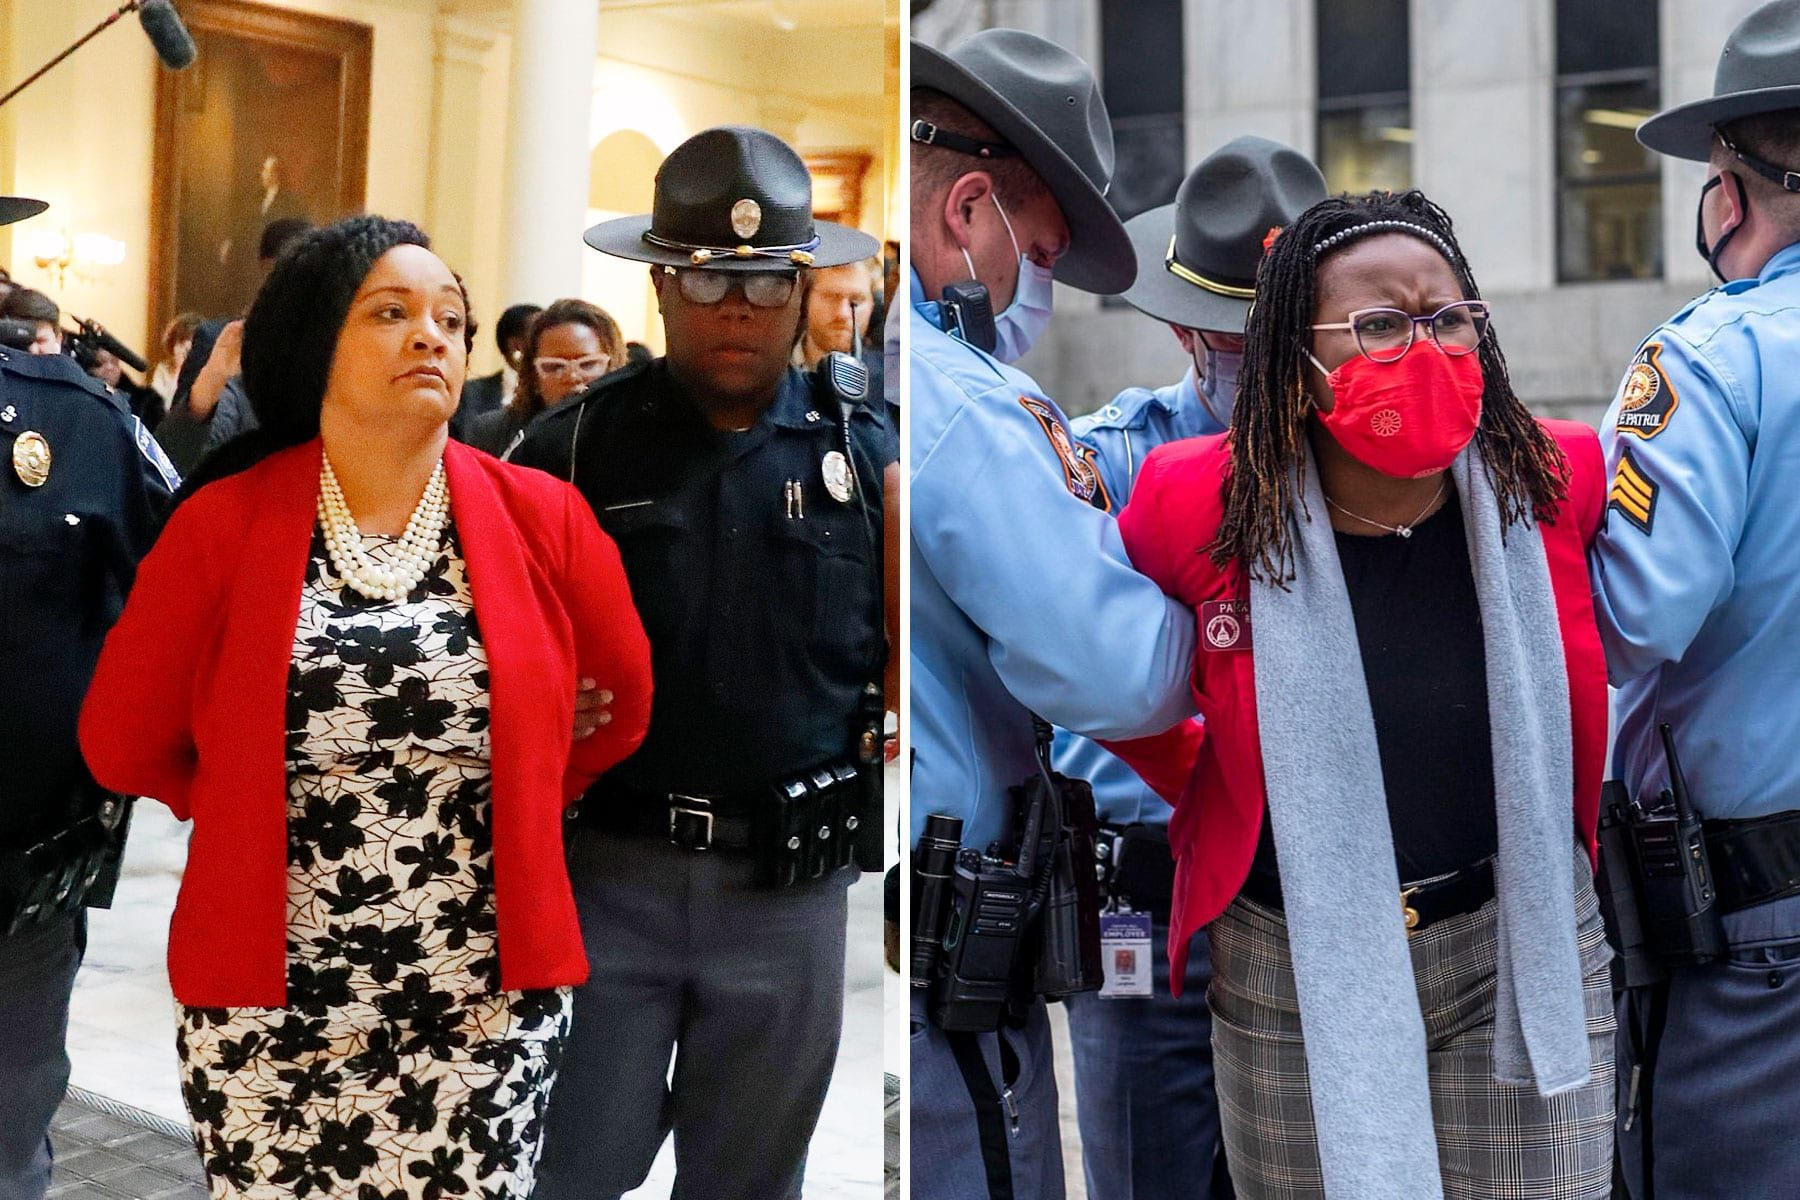 A composite image of Sen. Nikema Williams (D-Atlanta) and Georgia state Rep. Park Cannon being arrested.